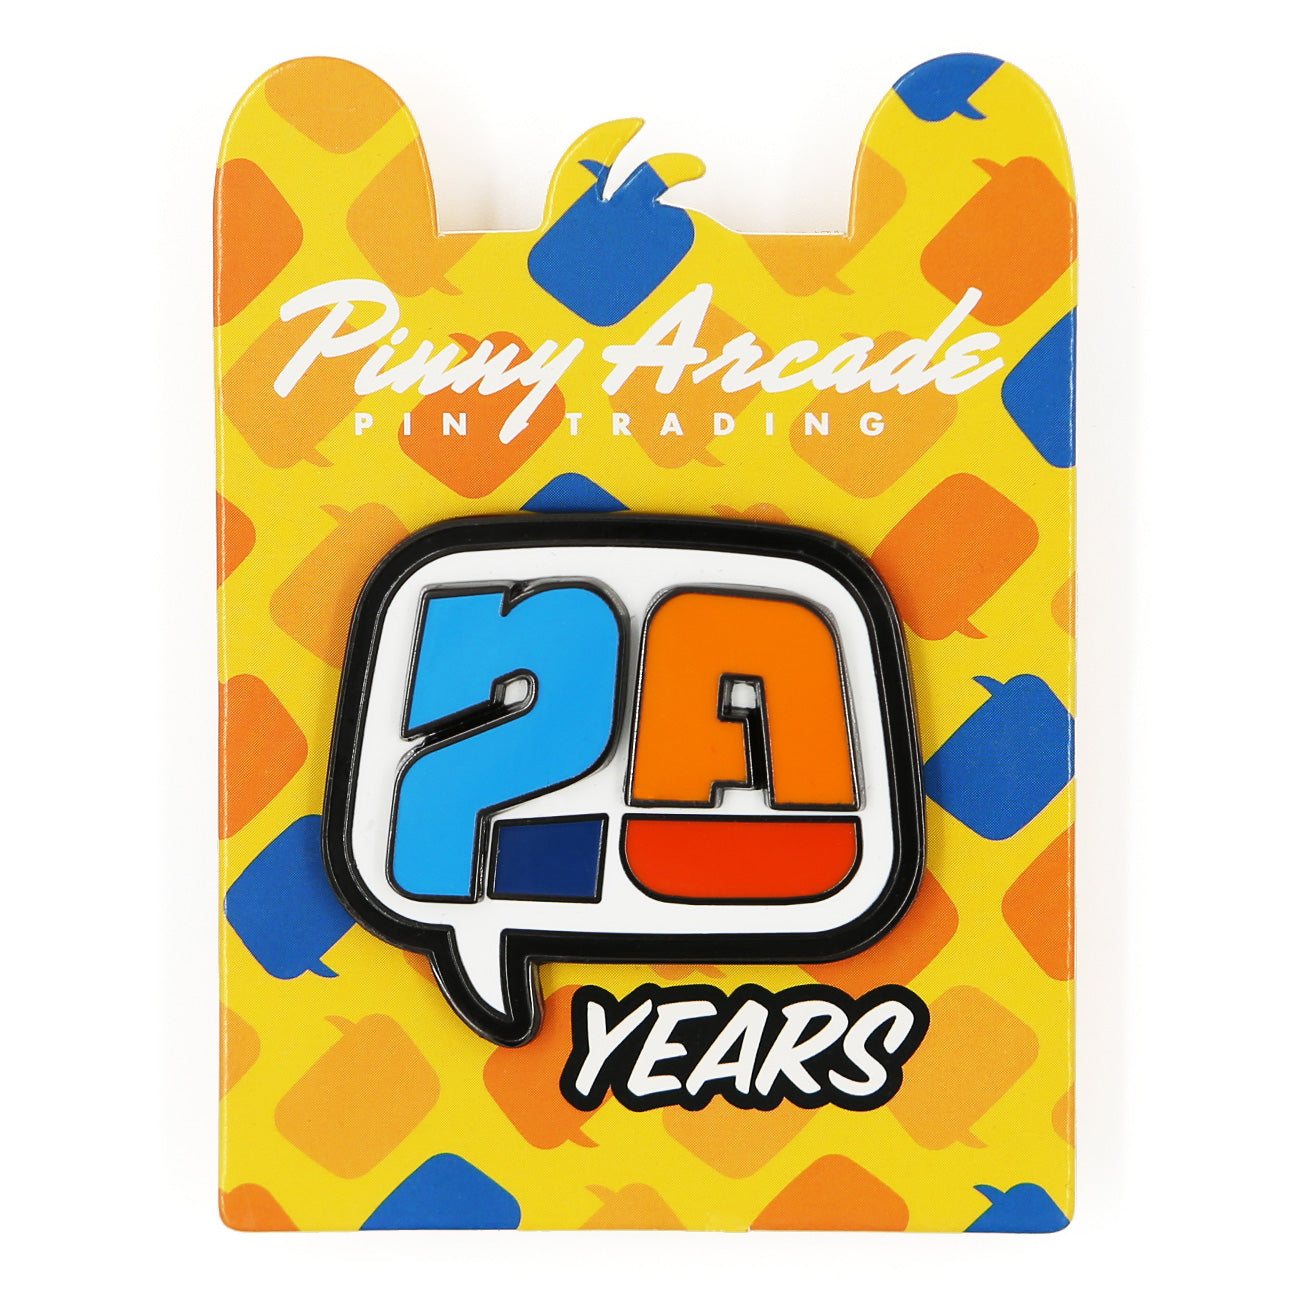 20th Anniversary Pin